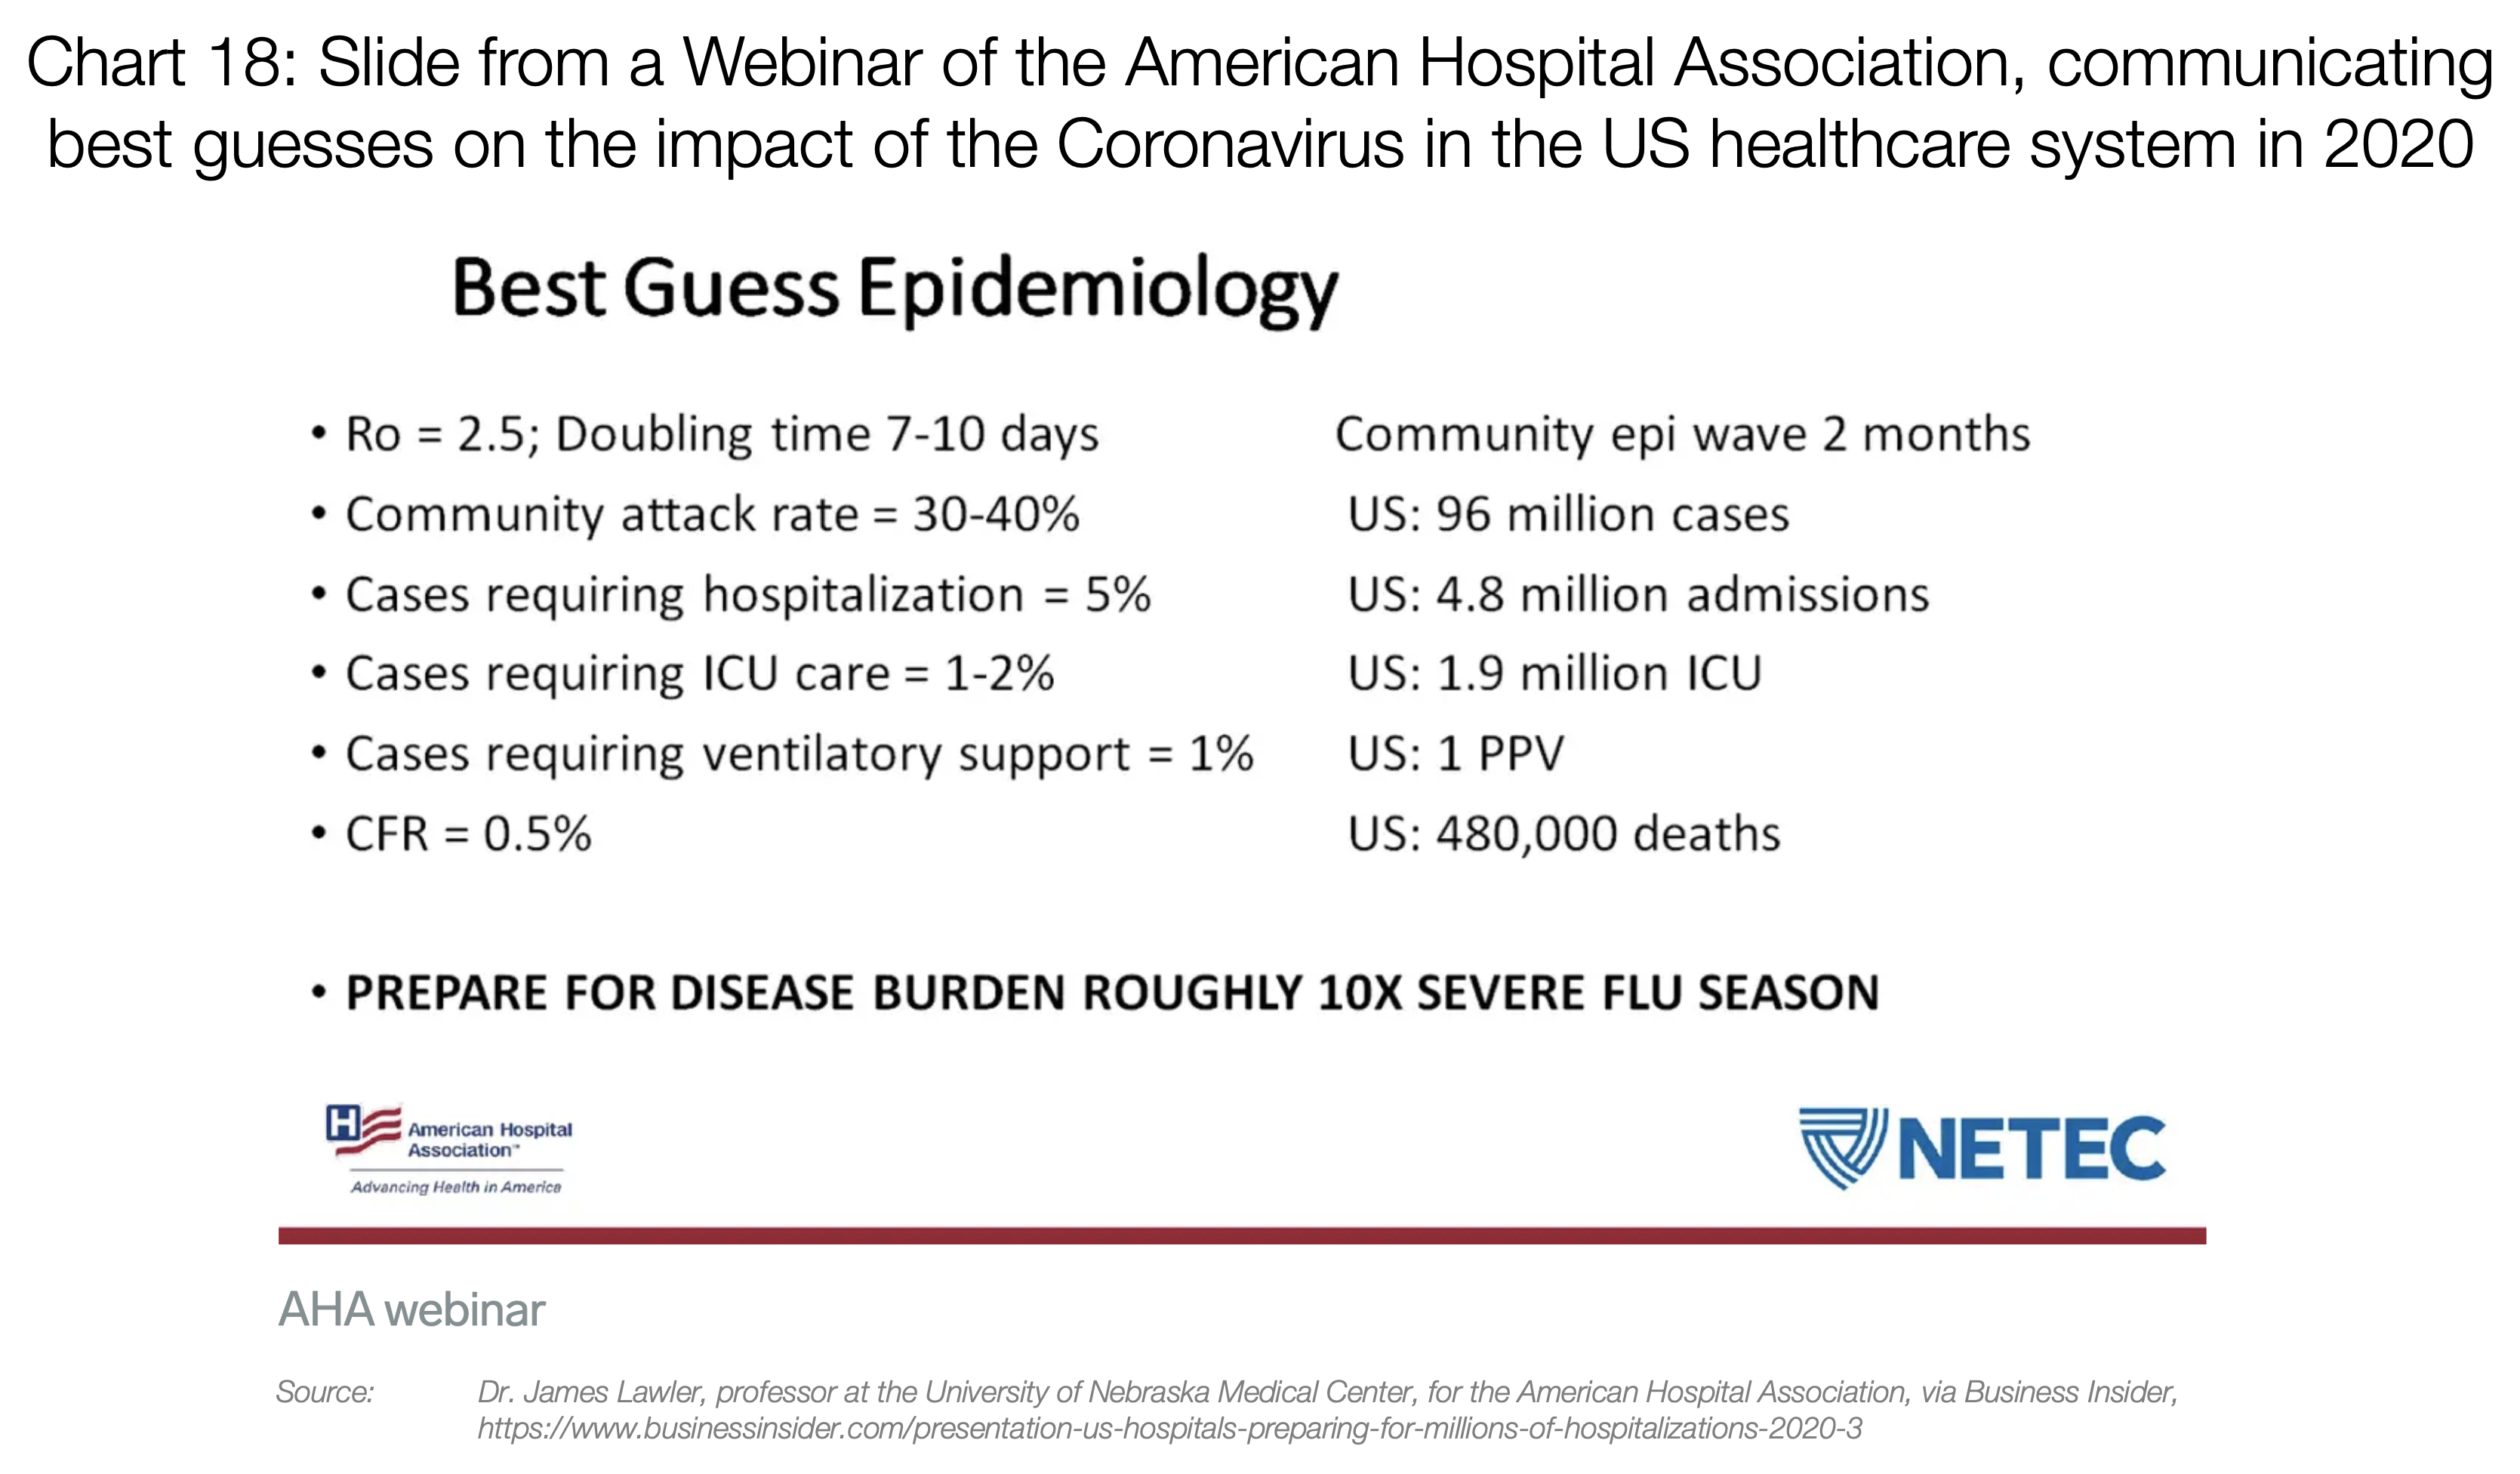 epidemiology_best_guess_3-20.png